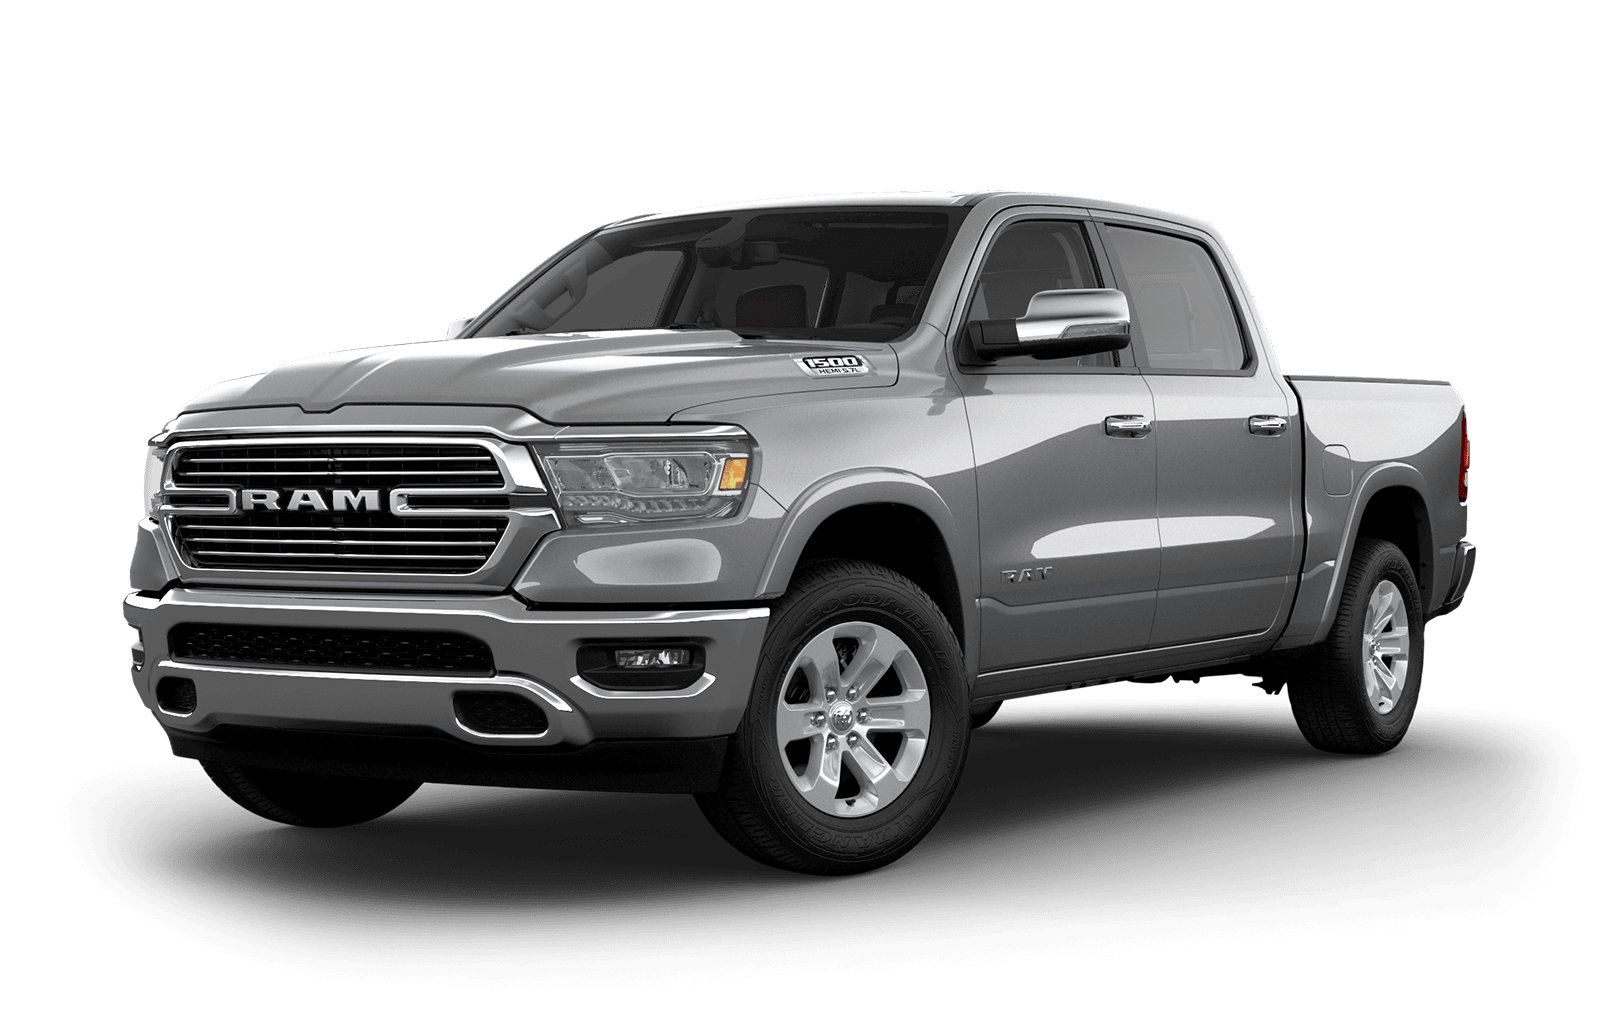 2020 Ram 1500 colour billet metallic